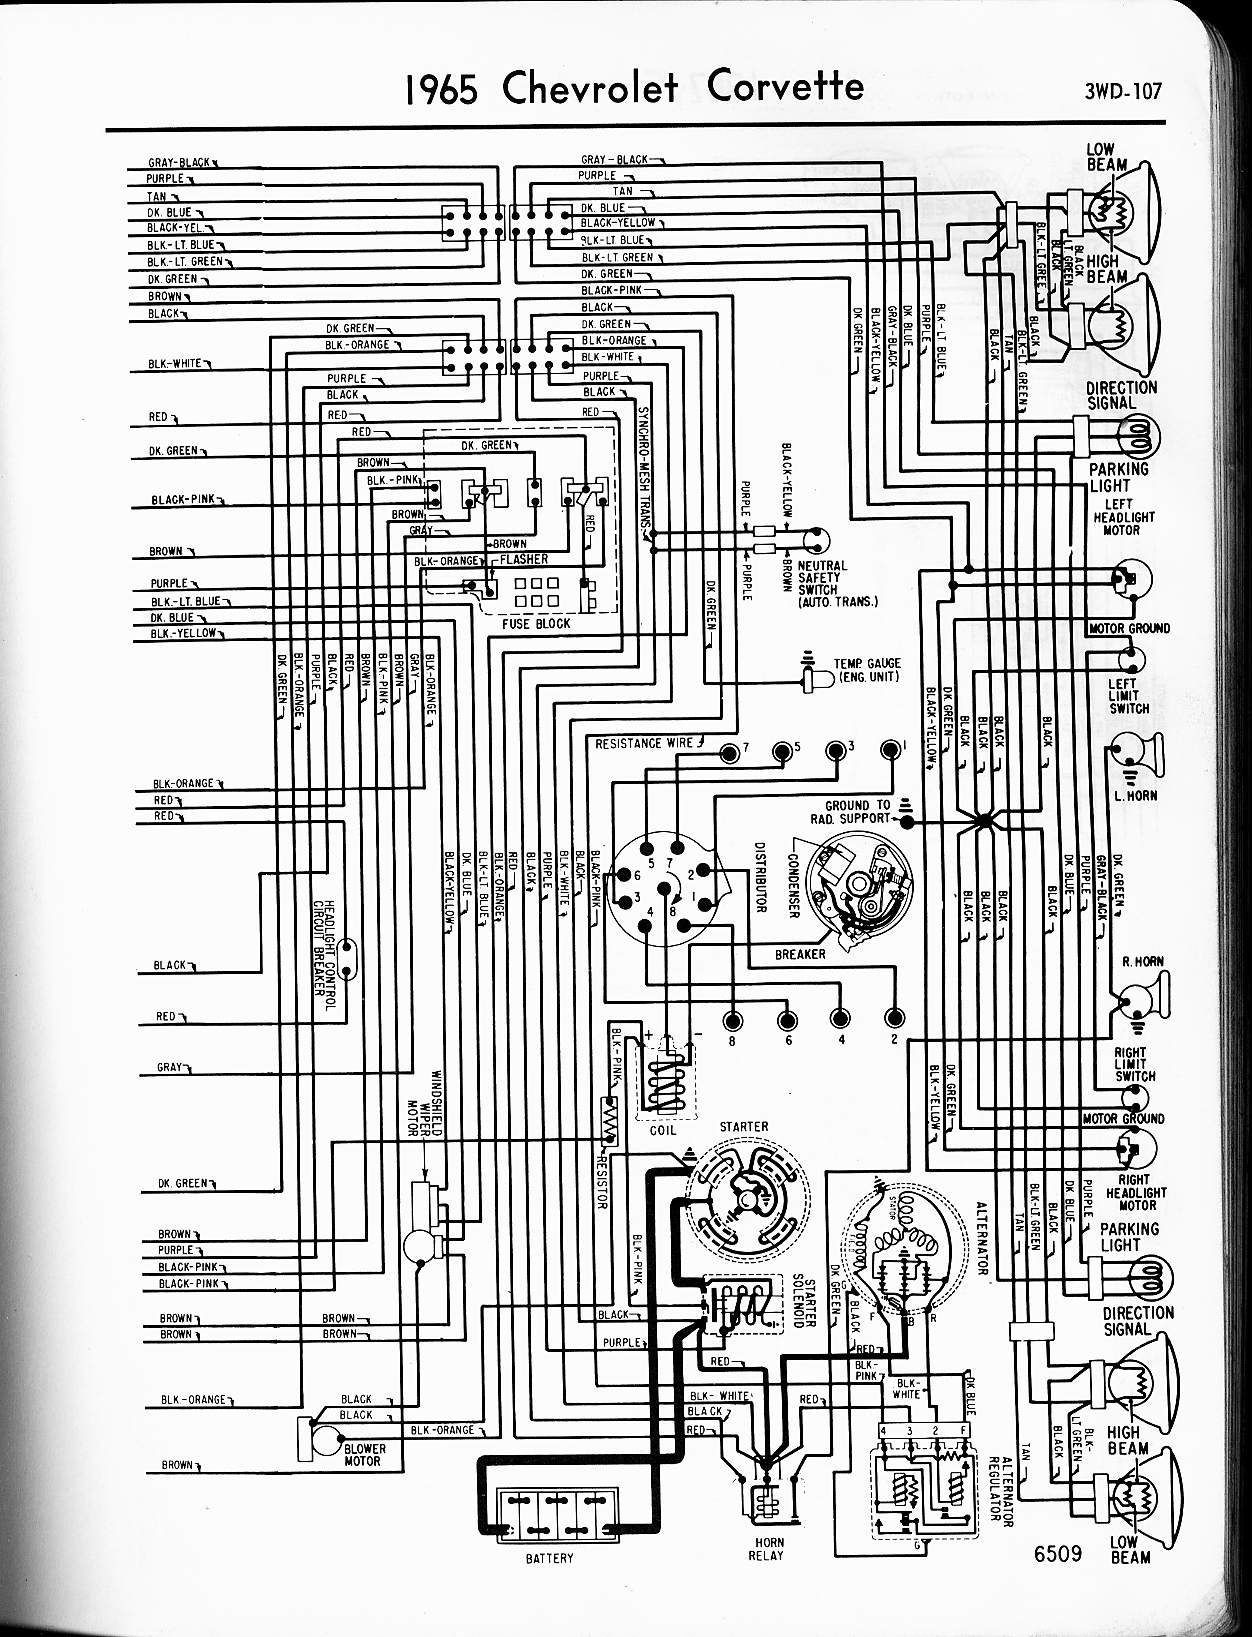 Wiring Diagram For Citroen C3 - Fuse Box For Mitsubishi Pajero for Wiring  Diagram Schematics | Citroen C3 2007 Wiring Diagram |  | Wiring Diagram Schematics